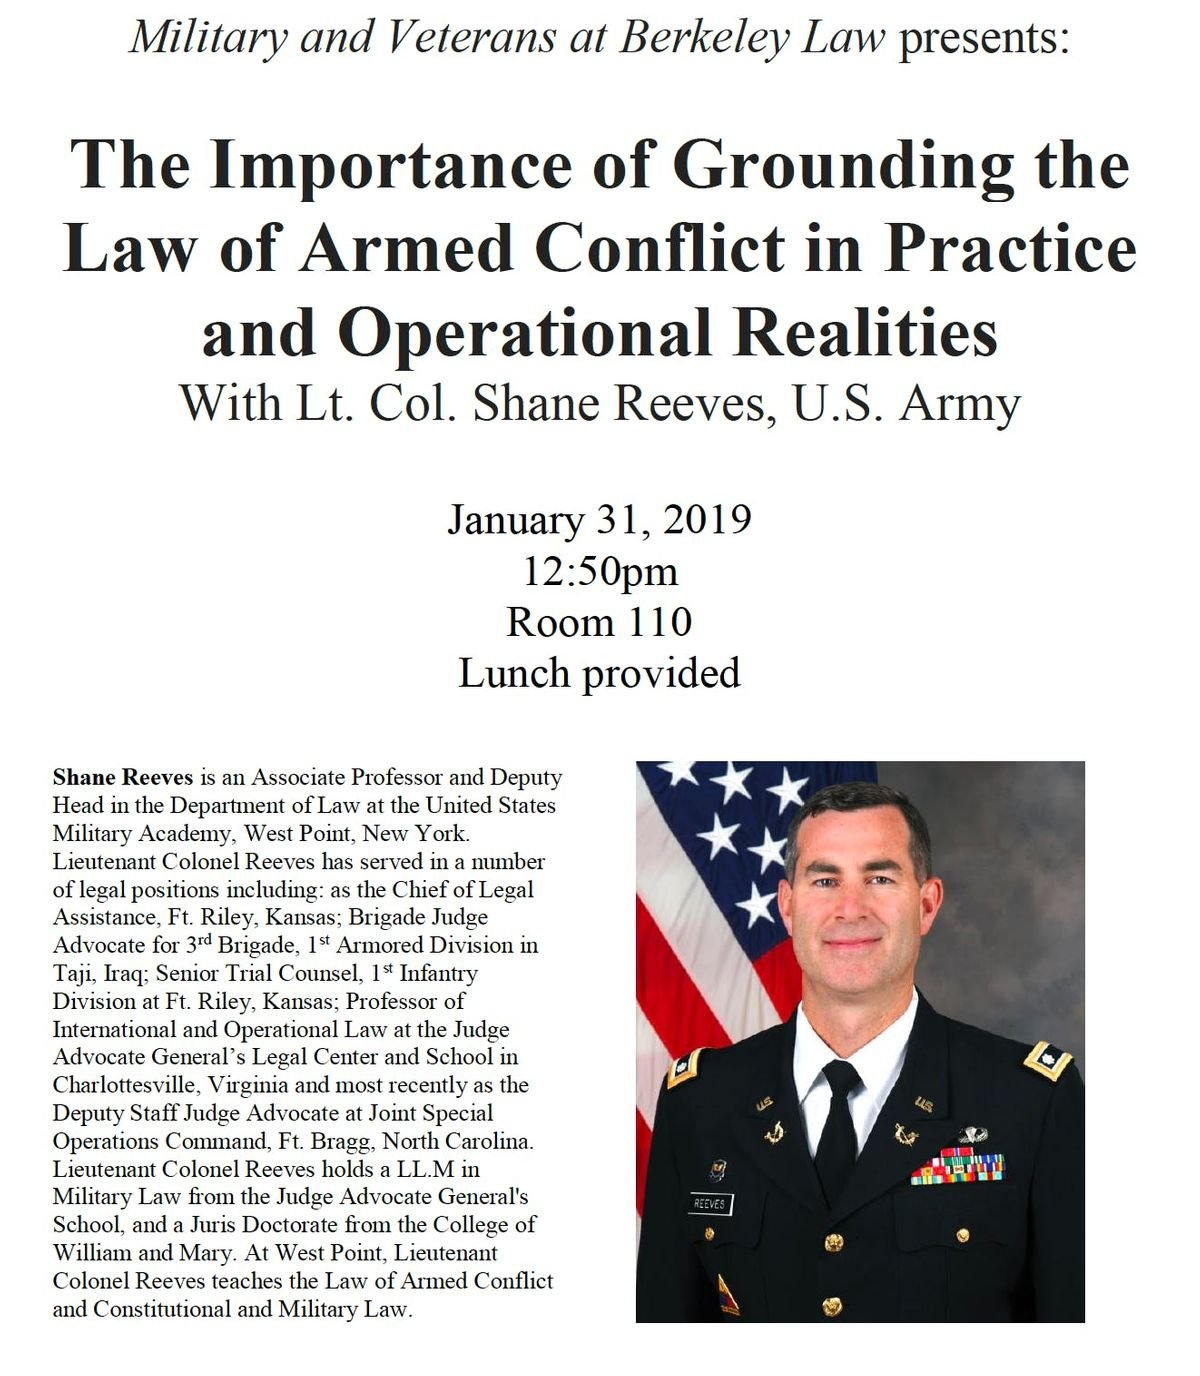 MVBL Lunch Talk Grounding the Law of Armed Conflict in Practice and Operational Realities